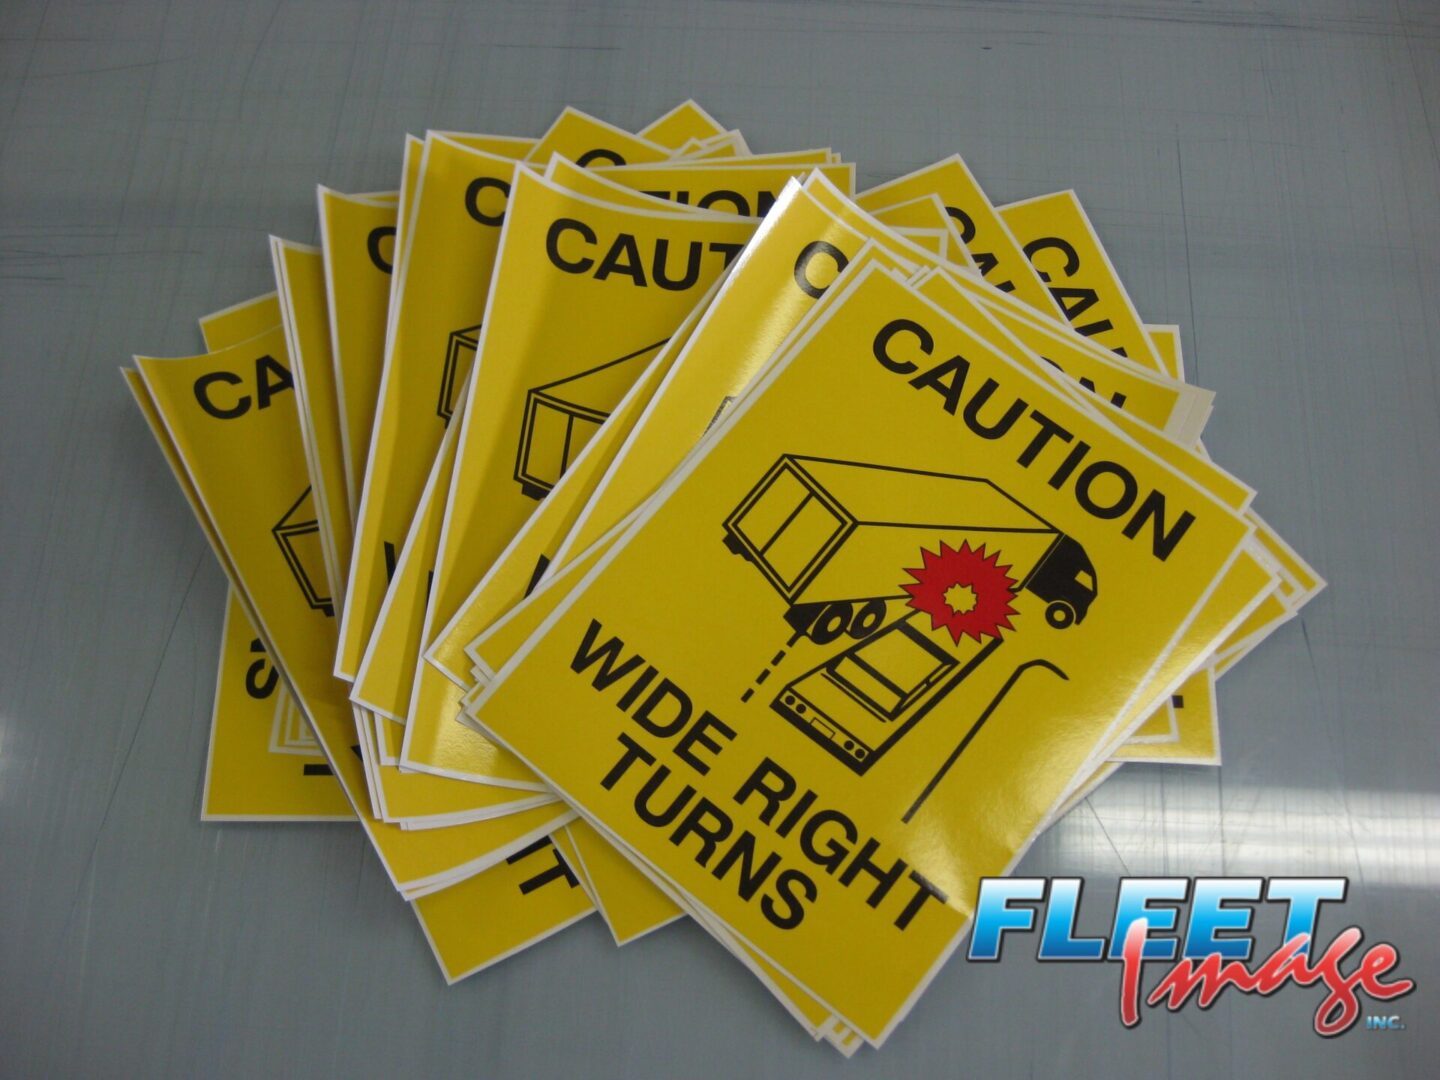 CAUTION WIDE RIGHT TURNS stickers